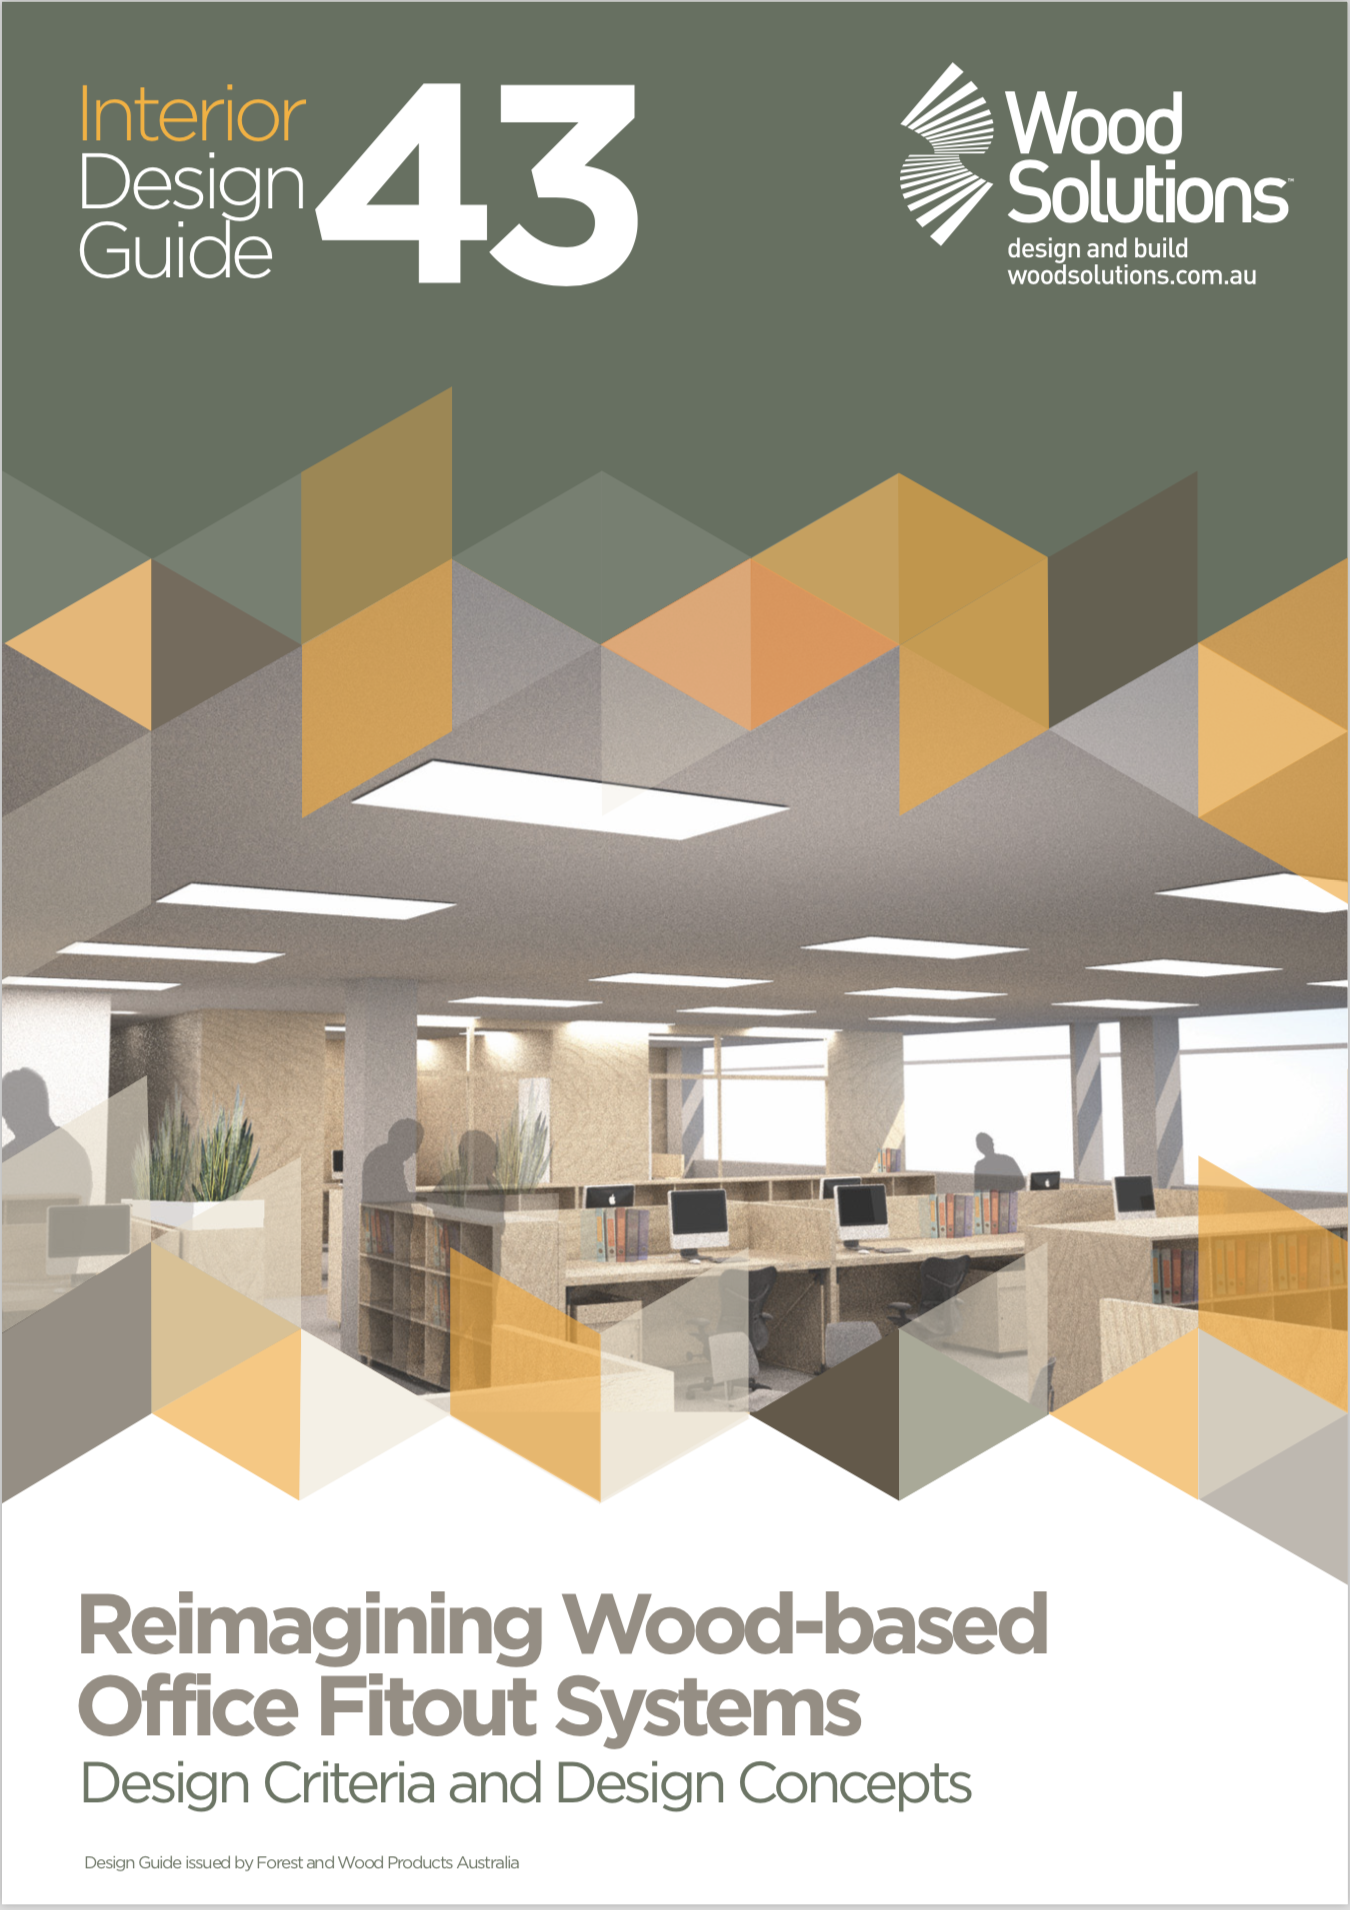 Design guide 43 reimagining wood based office fitout for Office design guide